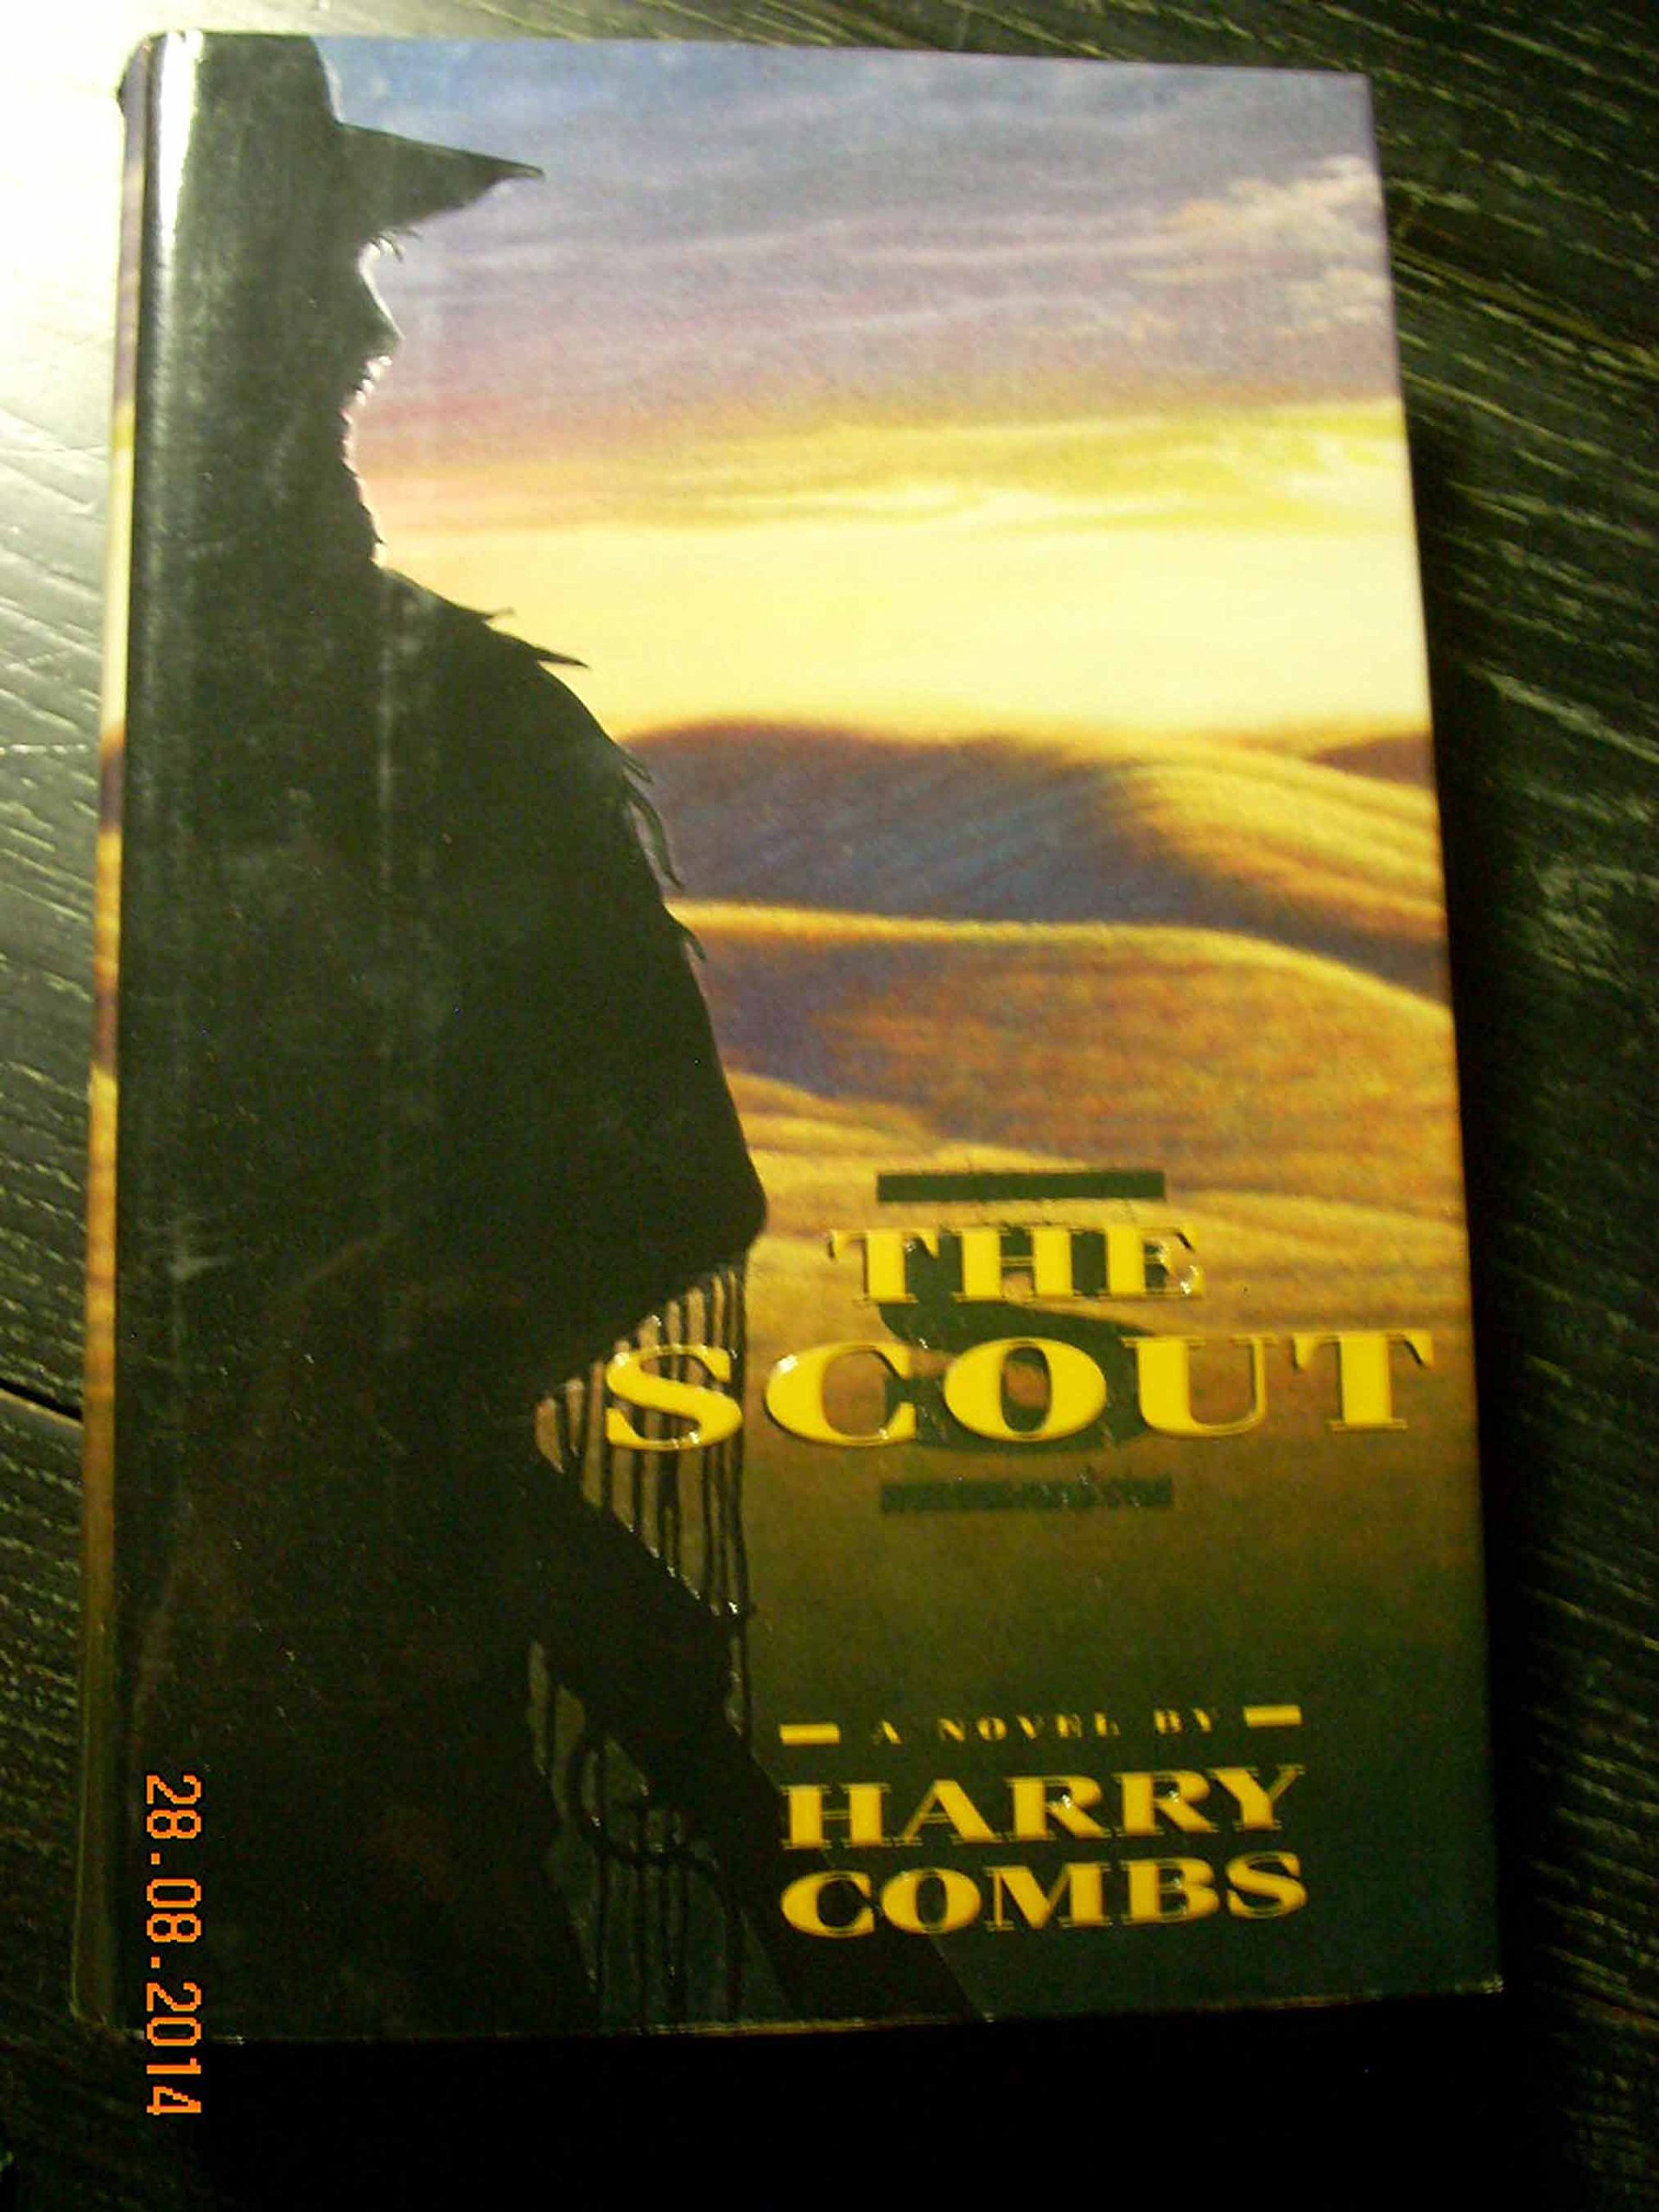 Scout Harry Combs product image